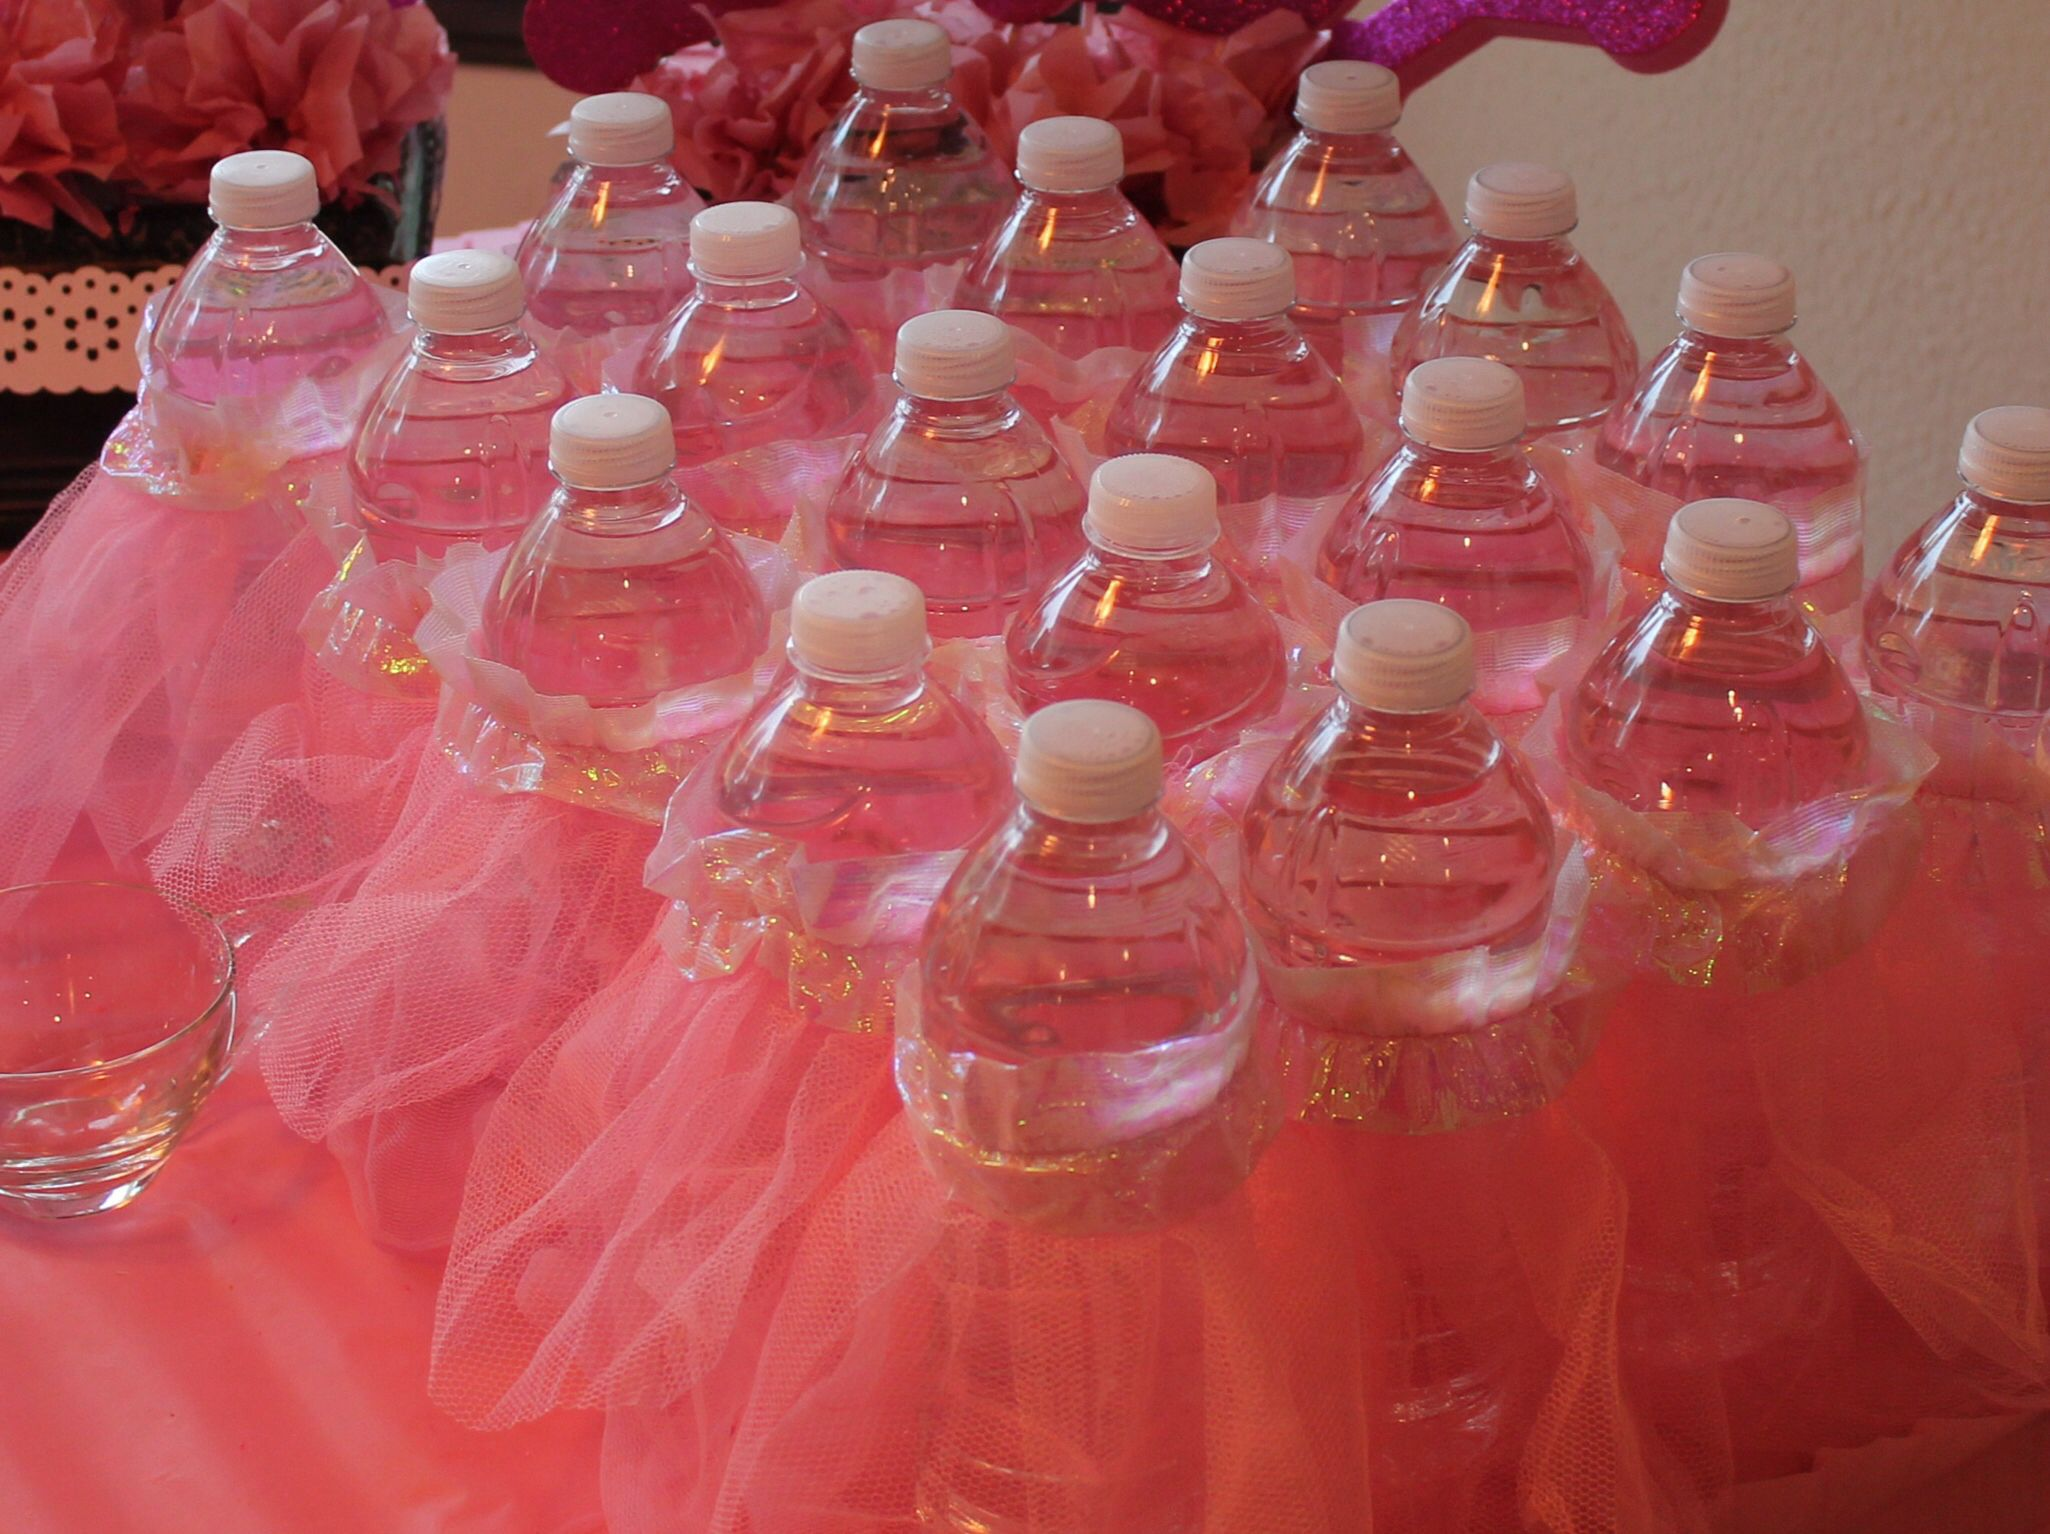 Baby Shower Decorations Idea: Peel Labels Off Water Bottle And Add Tutus